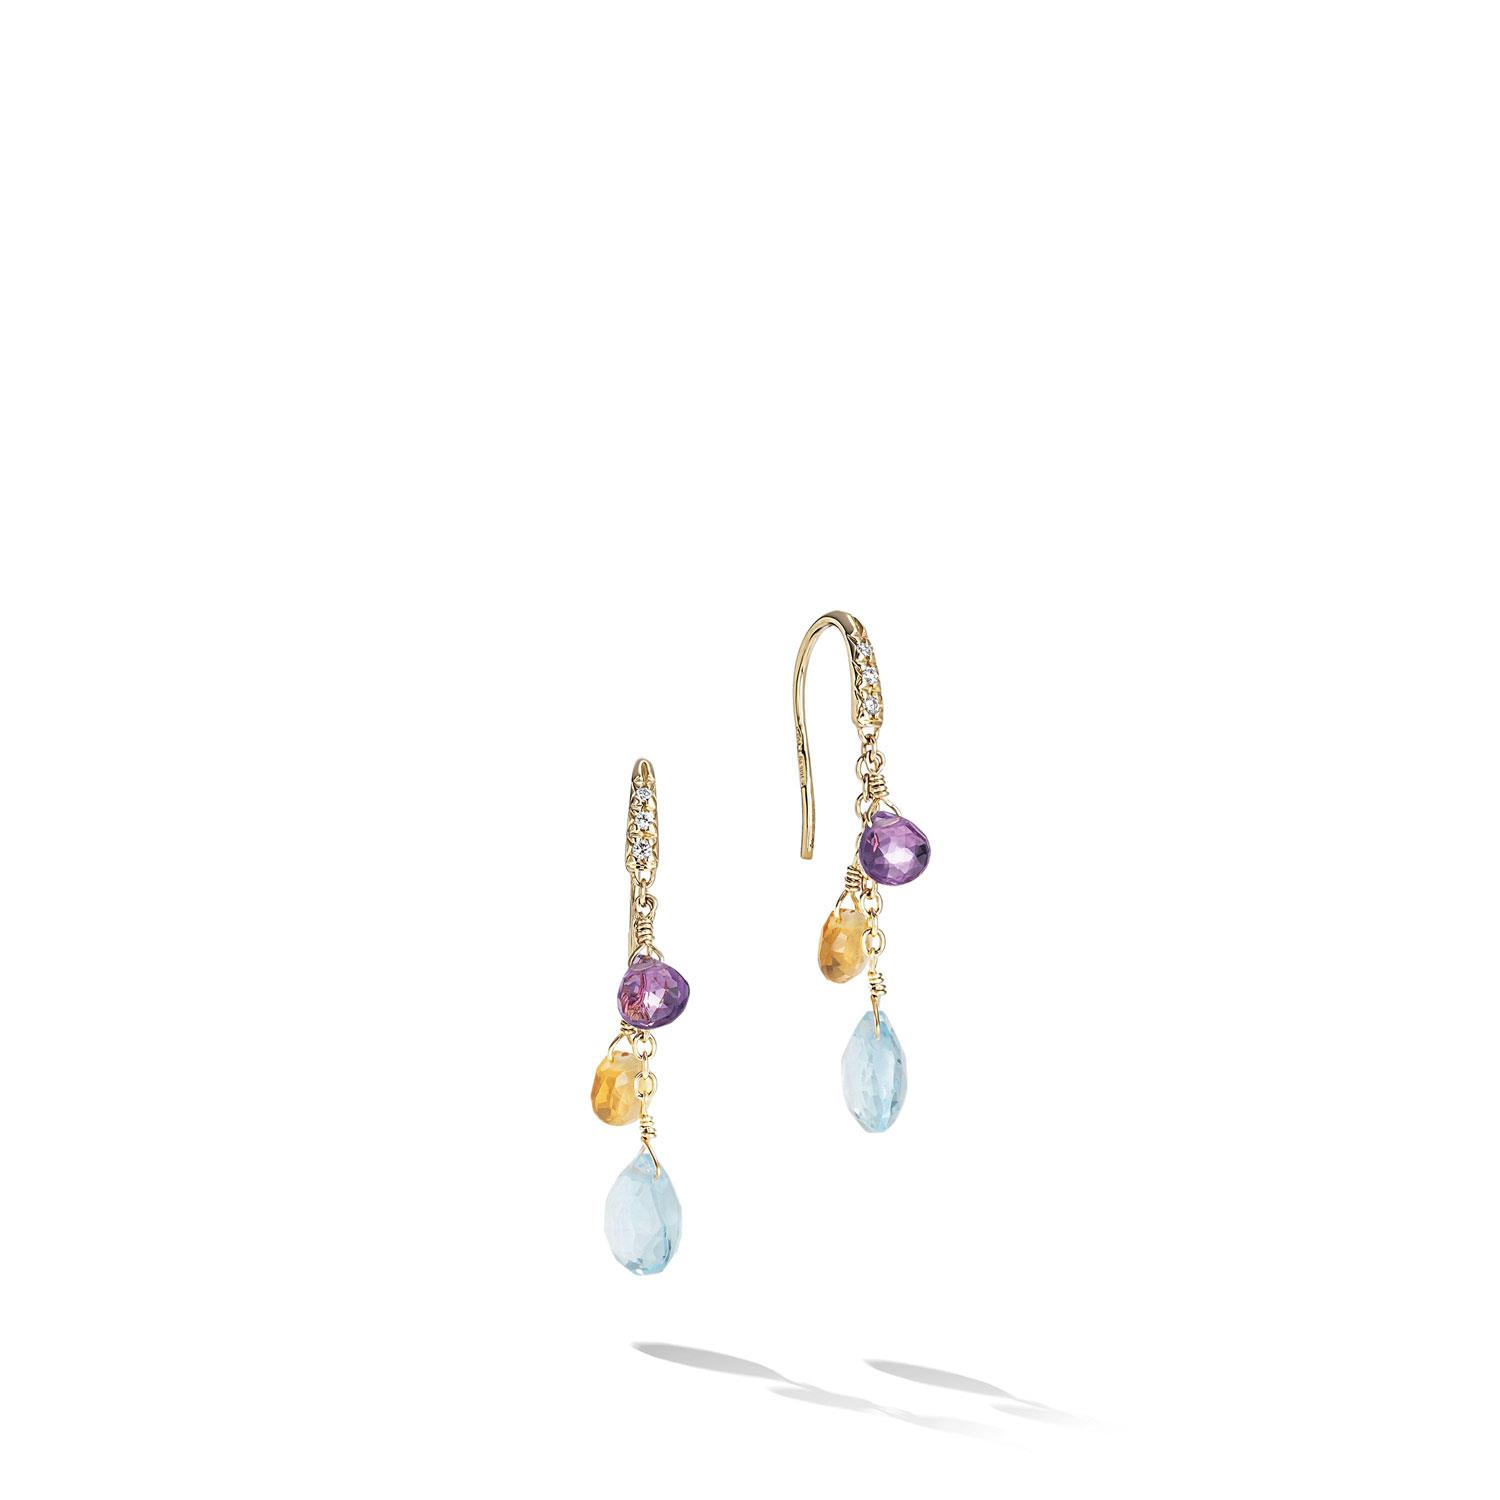 Ohrring Paradise 18ct Gelbgold - Marco Bicego - OB1742-ABMIX01T